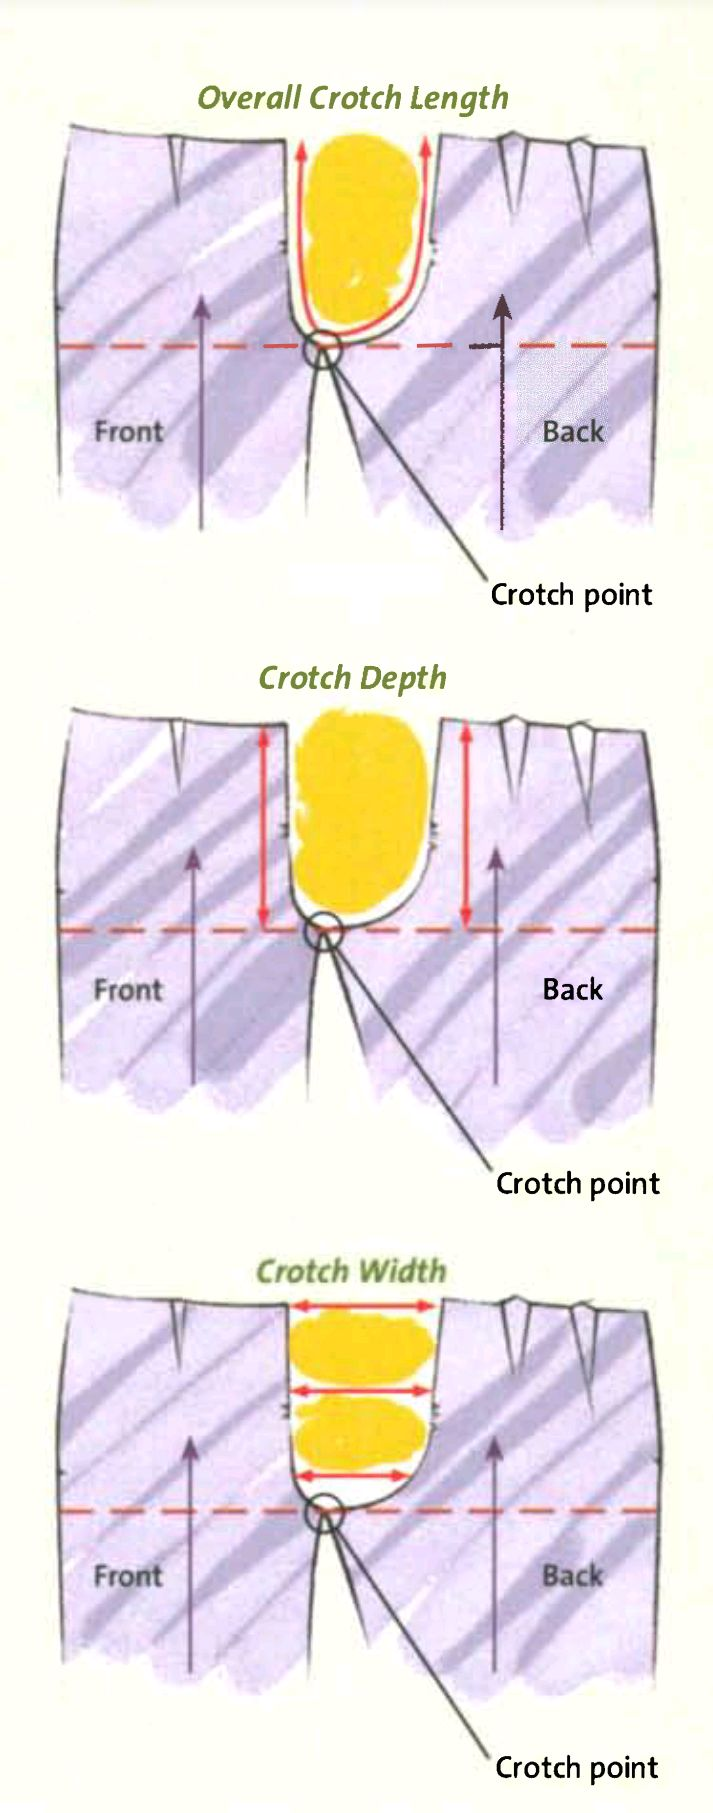 Comprehensive post on pant fitting - This post is on fitting a man's pants, but a lot of the information is applicable of either a man or woman's pants